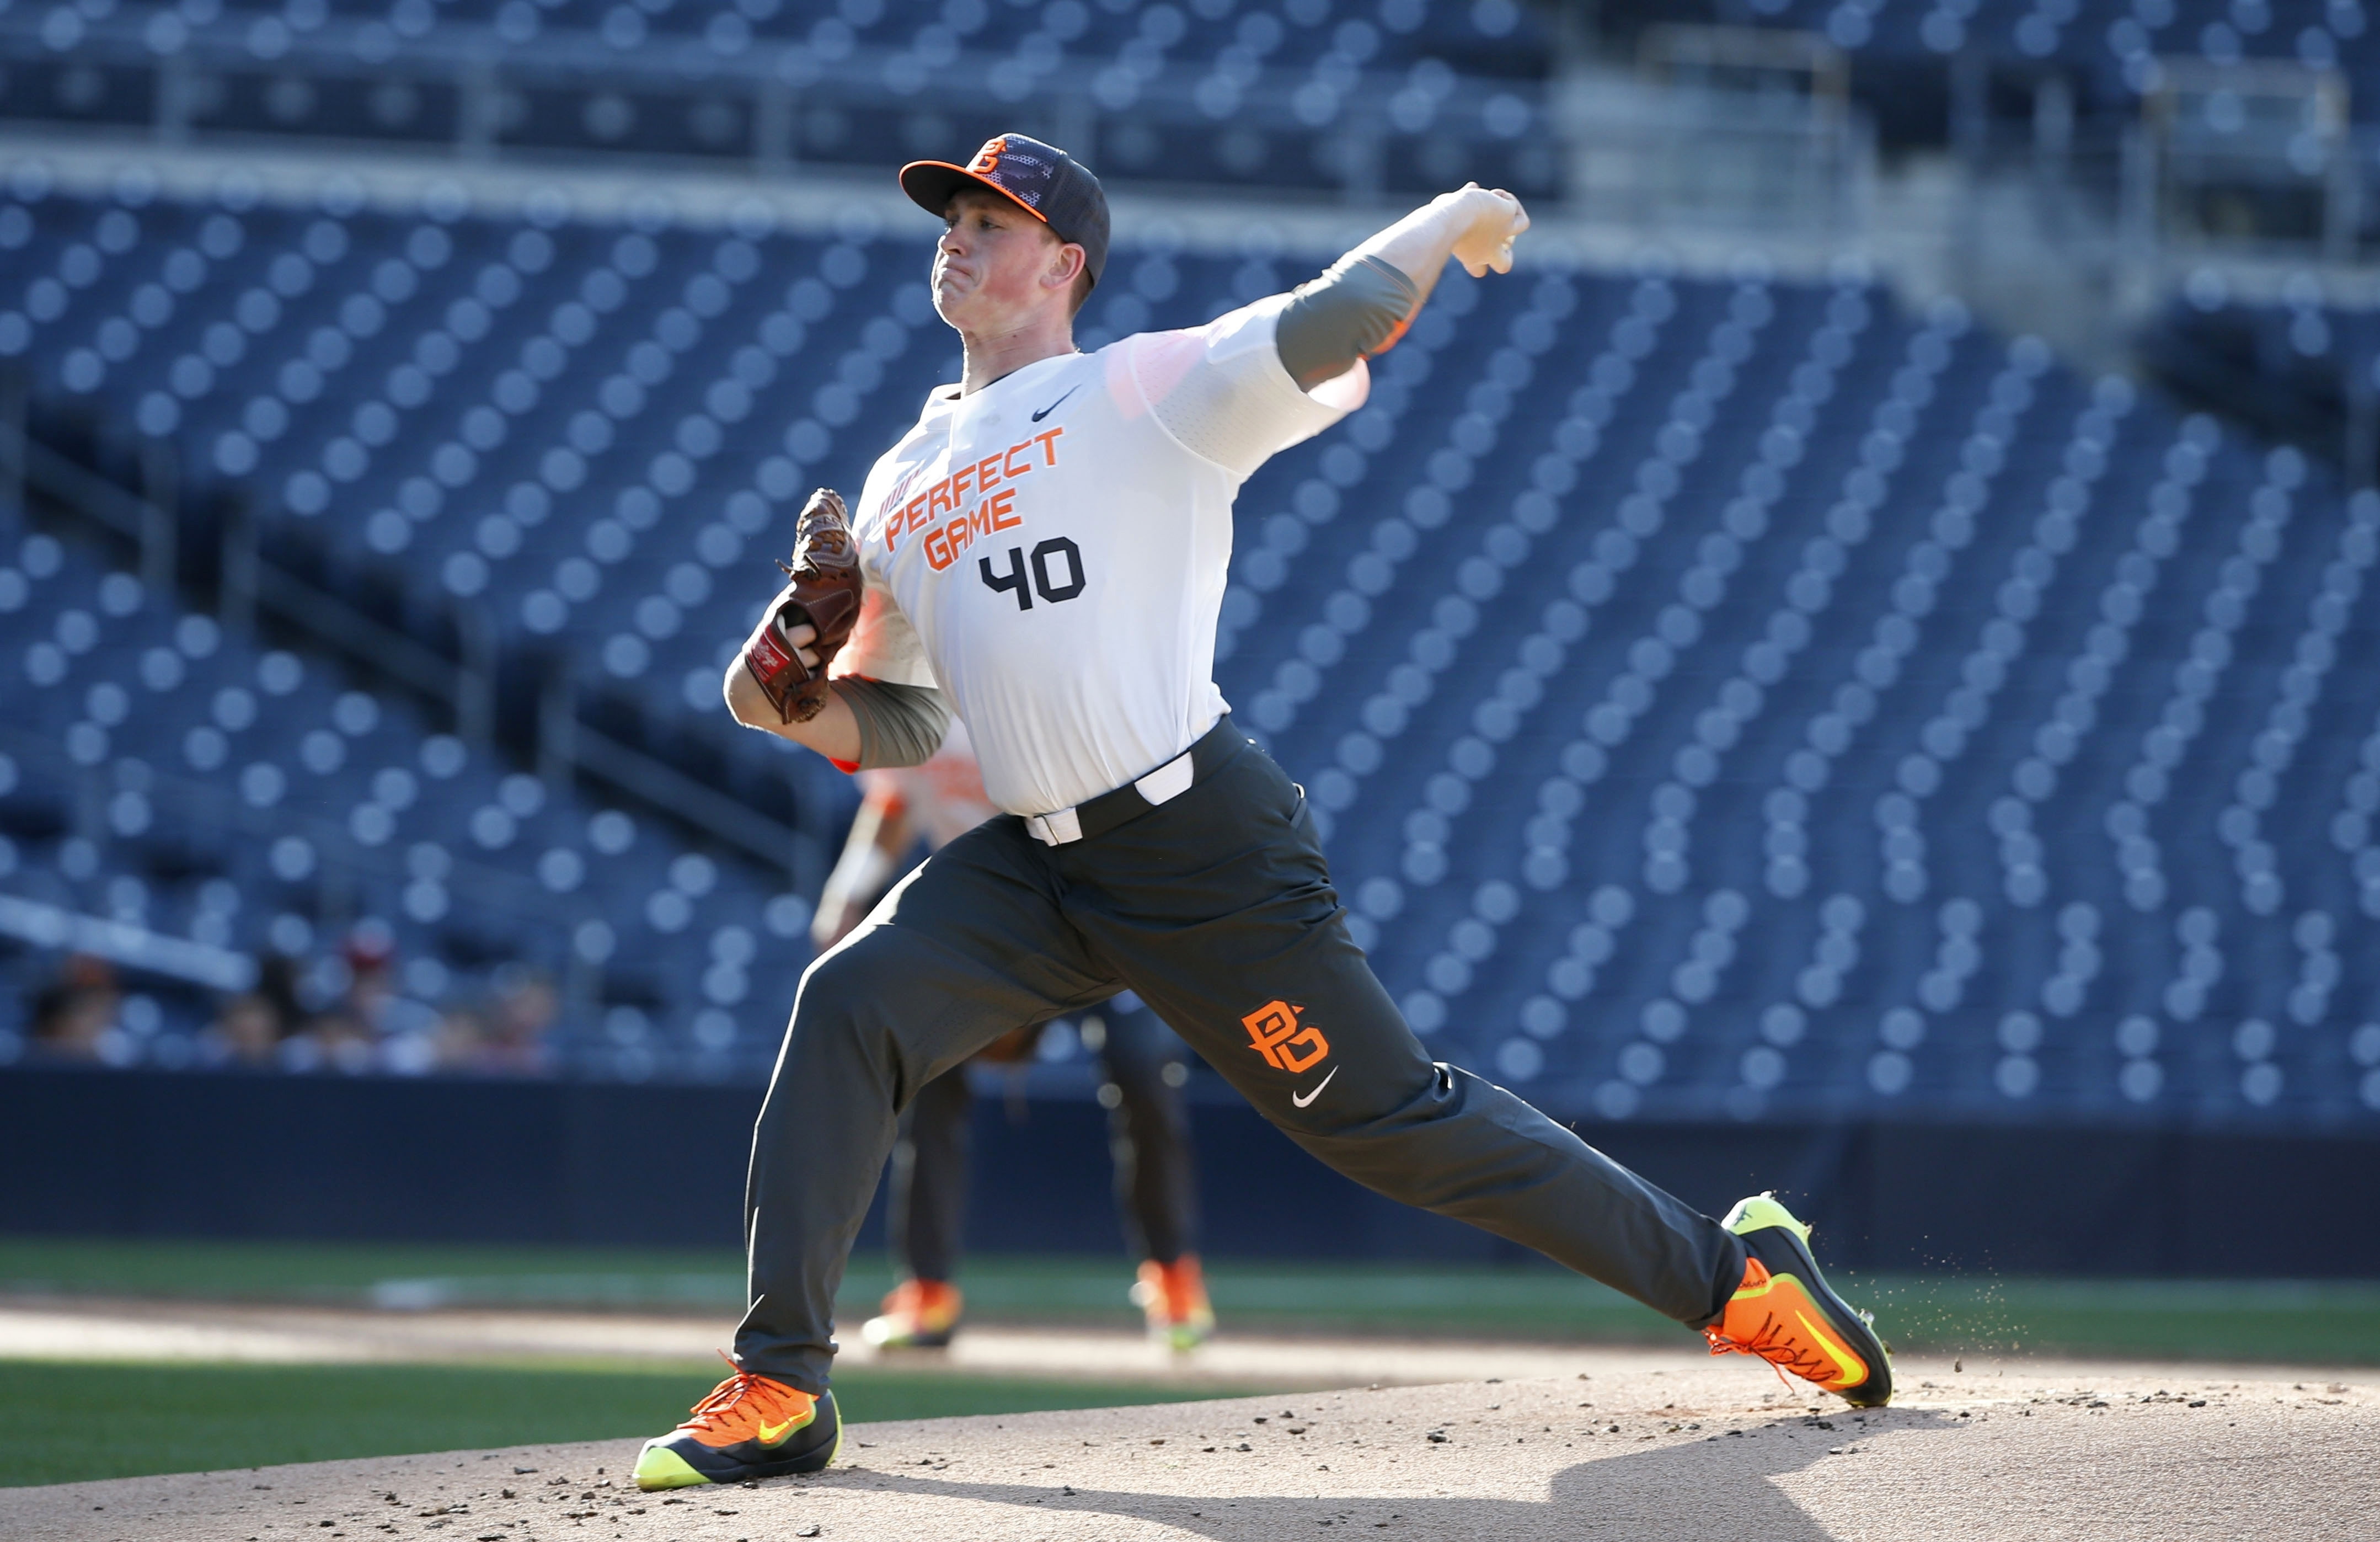 FILE - In this Aug. 16, 2015, file photo, Jason Groome pitches during the Perfect Game All-American Classic high school baseball game, in San Diego. Groome is a top prospect in the Major League Baseball draft. (AP Photo/Lenny Ignelzi, File)